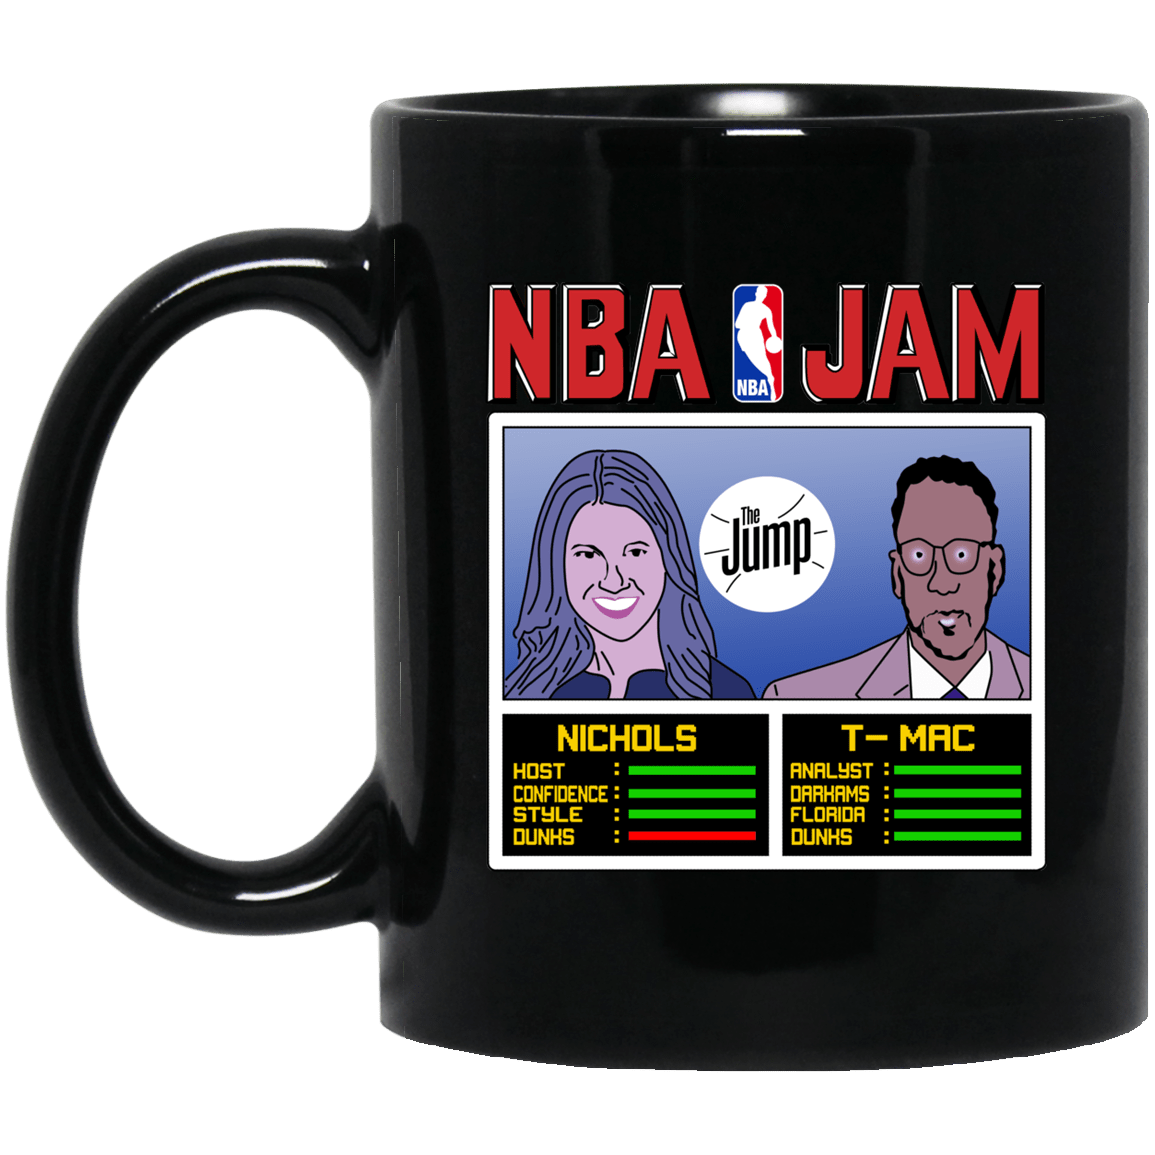 NBA Jam The Jump Nichols TMac Black Mug 1065-10181-93051322-49307 - Tee Ript